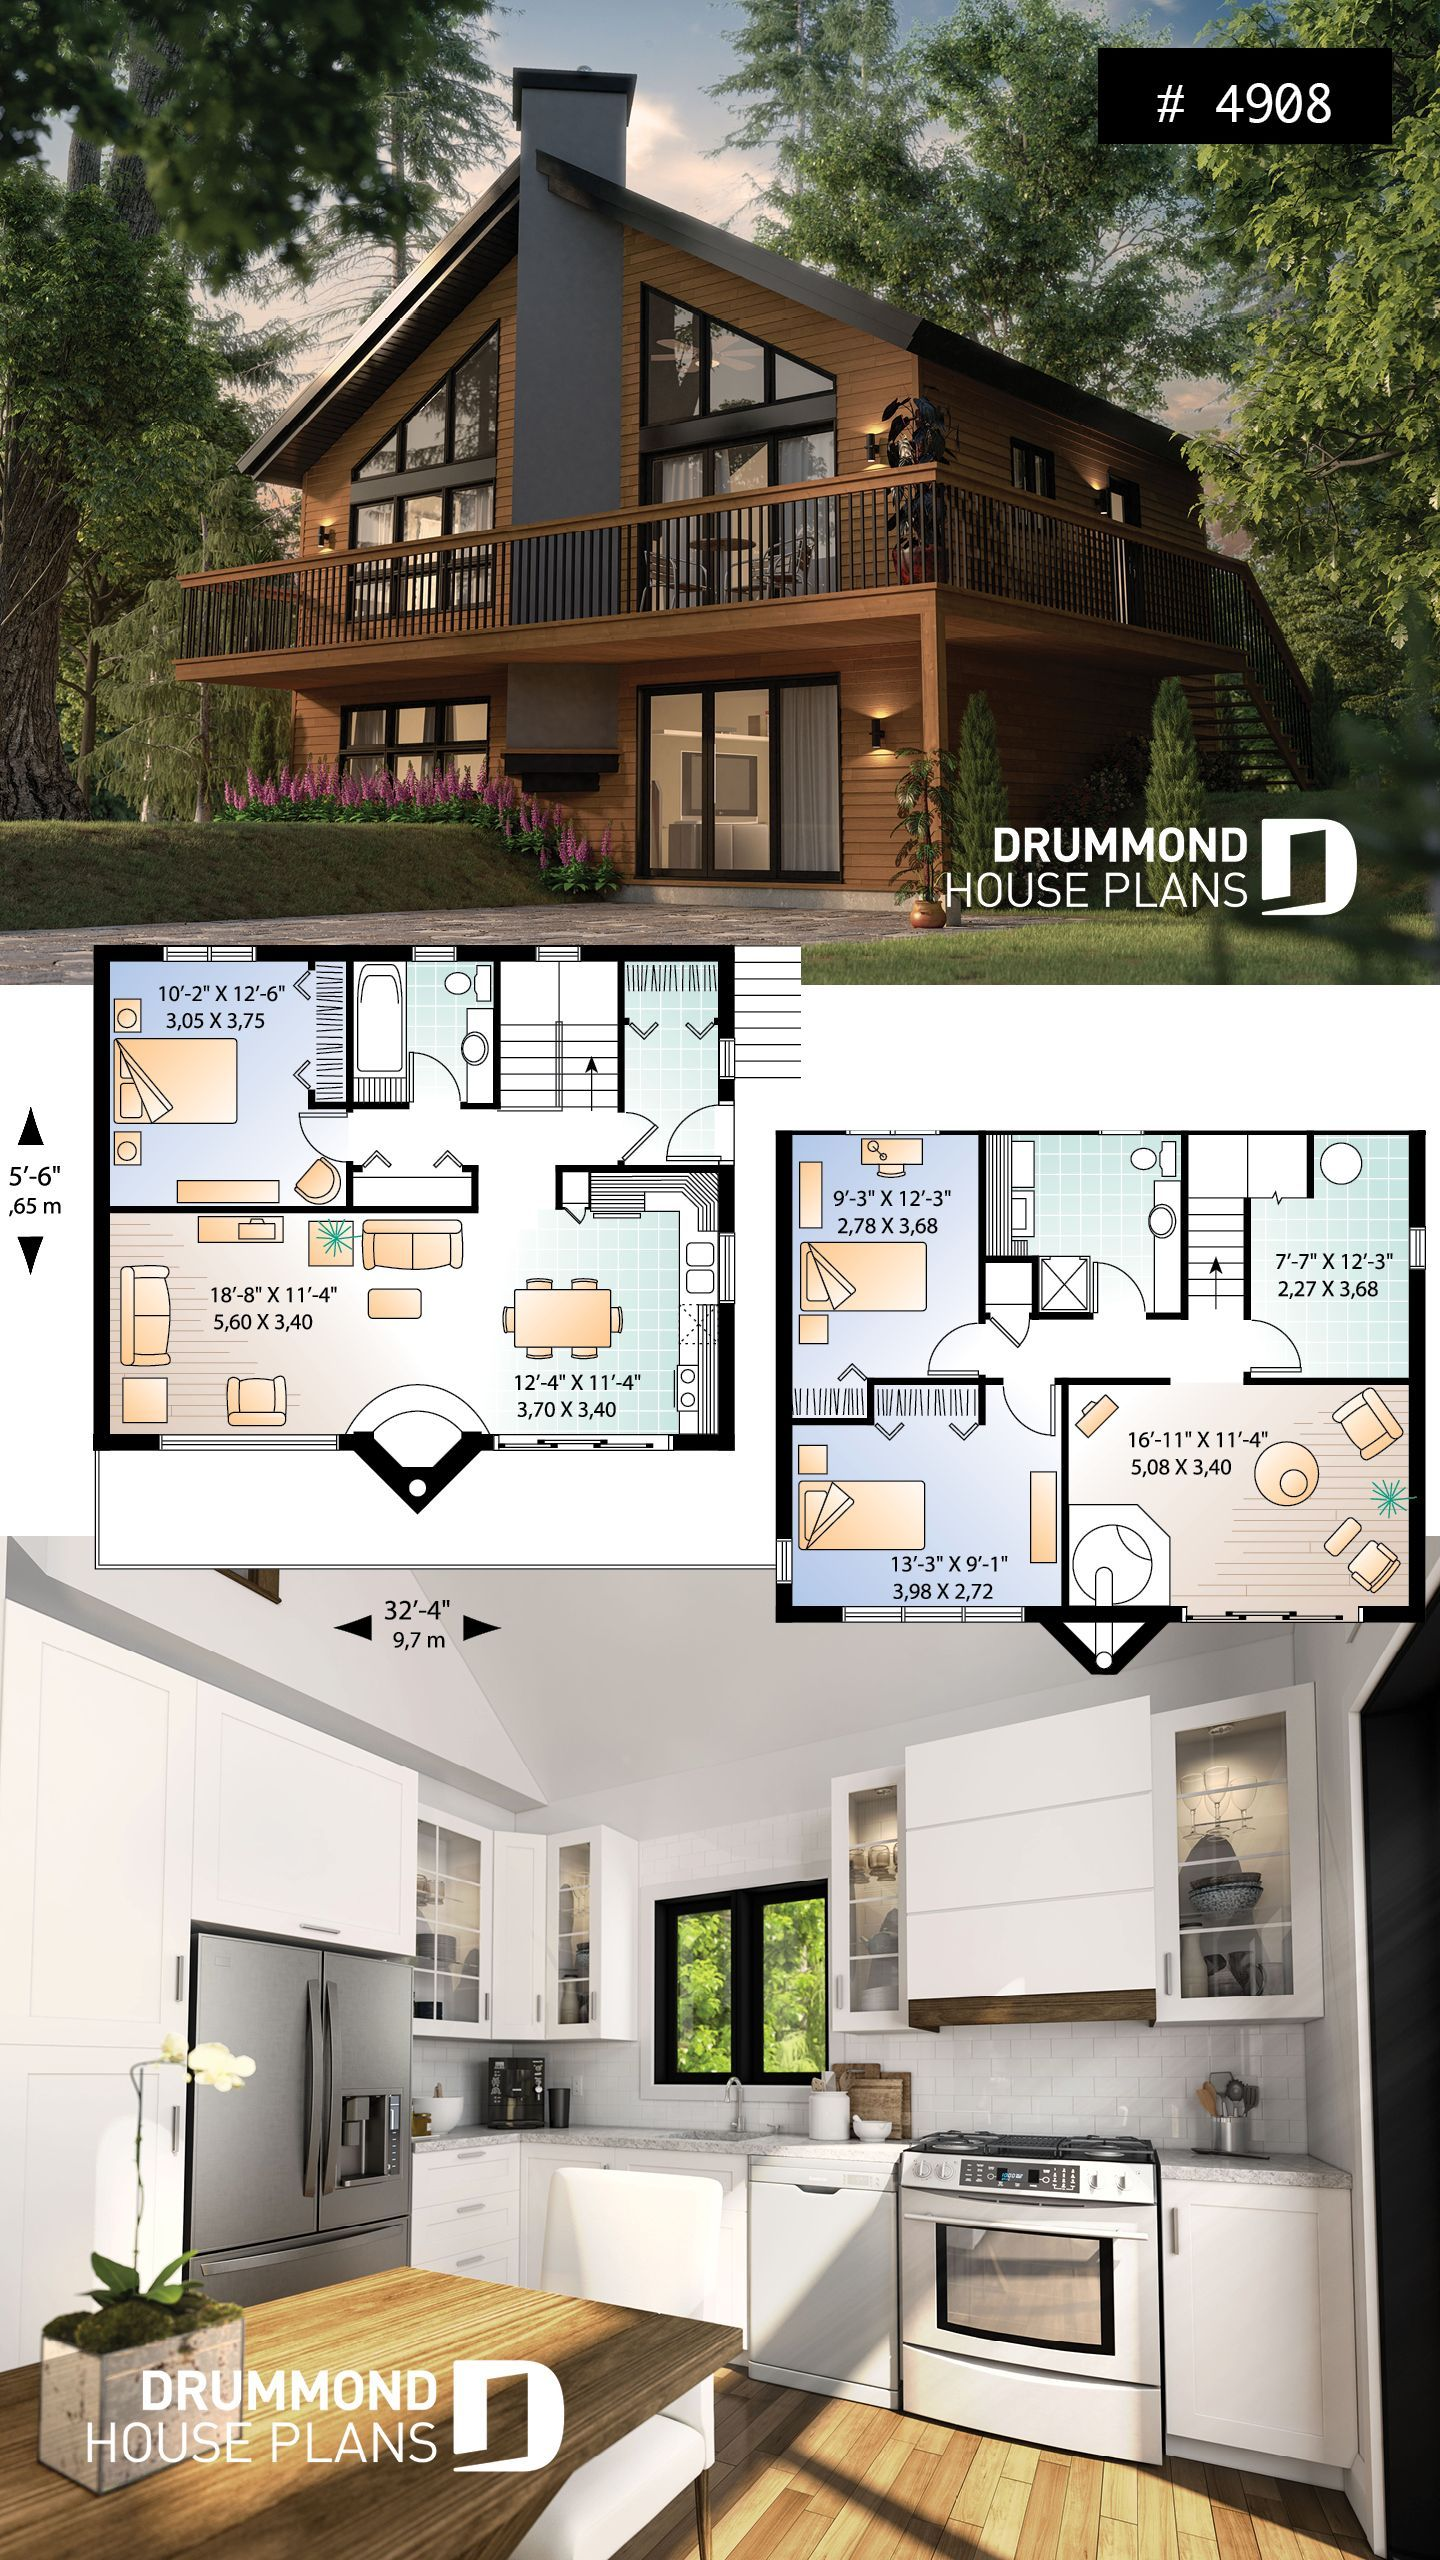 Modern Rustic Cottage 3 Bedroom Fireplace Rustic House Plans Cottage Plan Rustic House